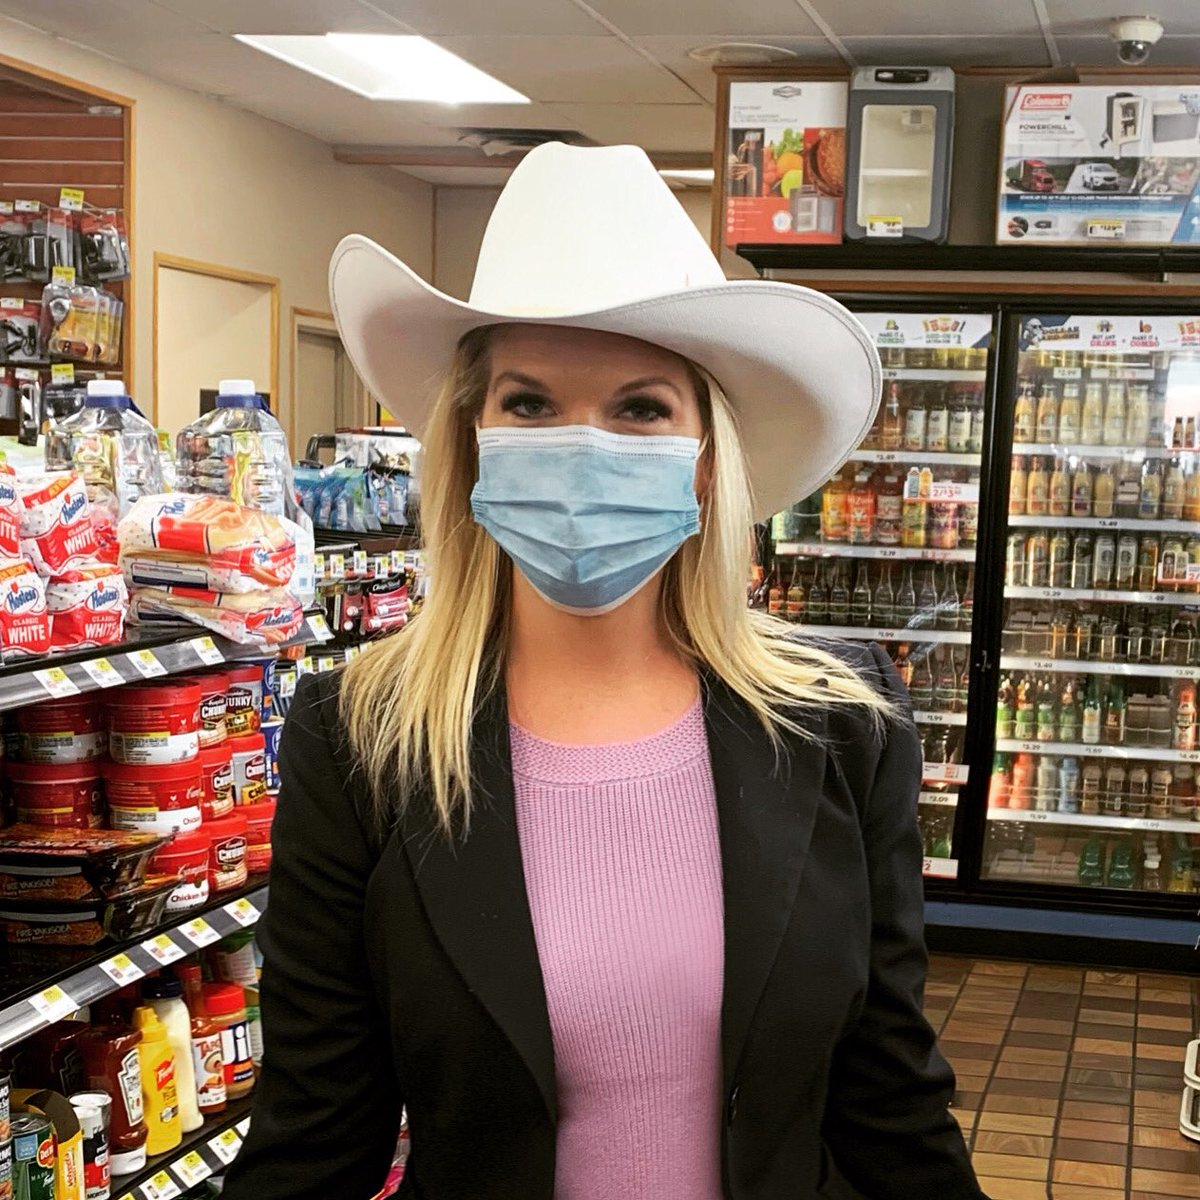 How's my hat look with my mask? #campaigntrail #MondayMotivaton #Oklahoma